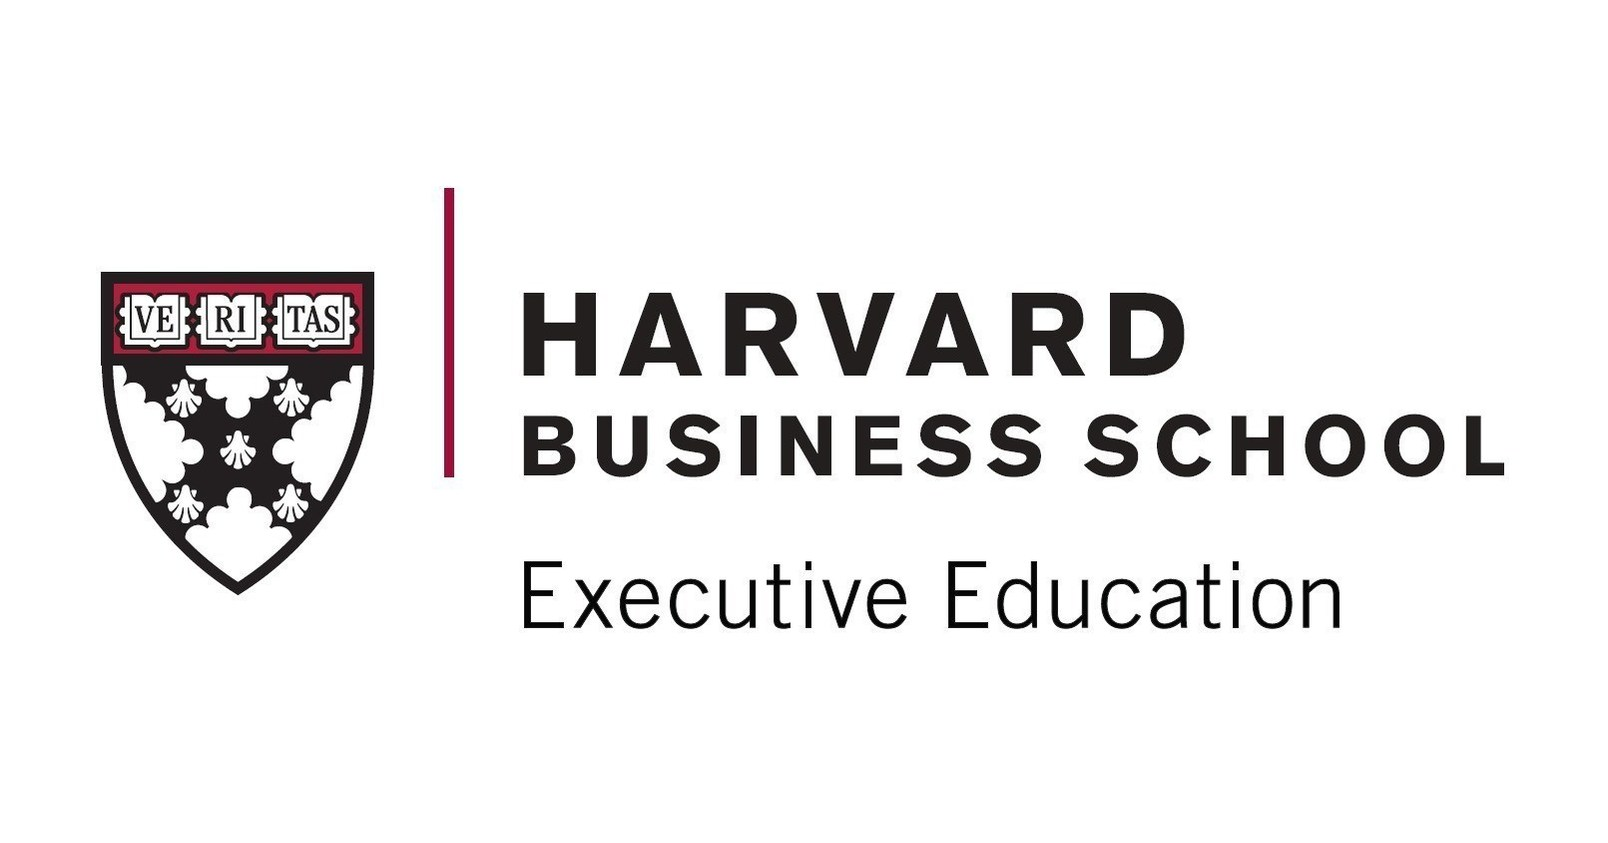 Creating A Culture Of Innovation The Focus Of New Harvard Business School Executive Education